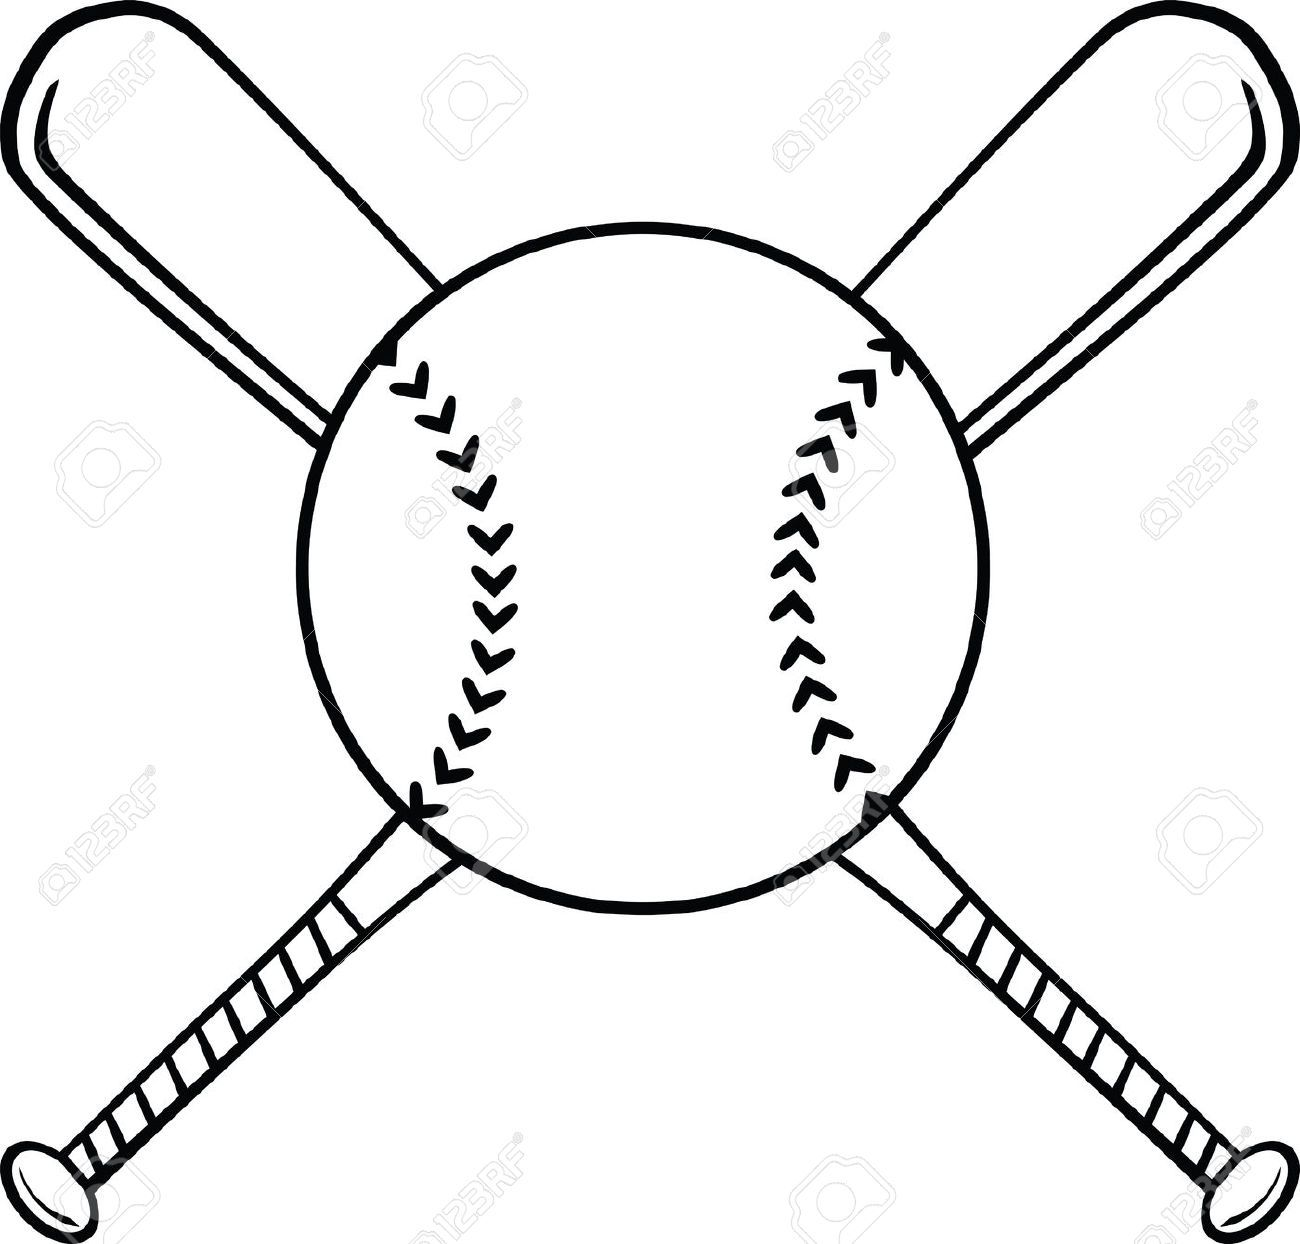 Baseball bat drawing. Softball ball and clipart